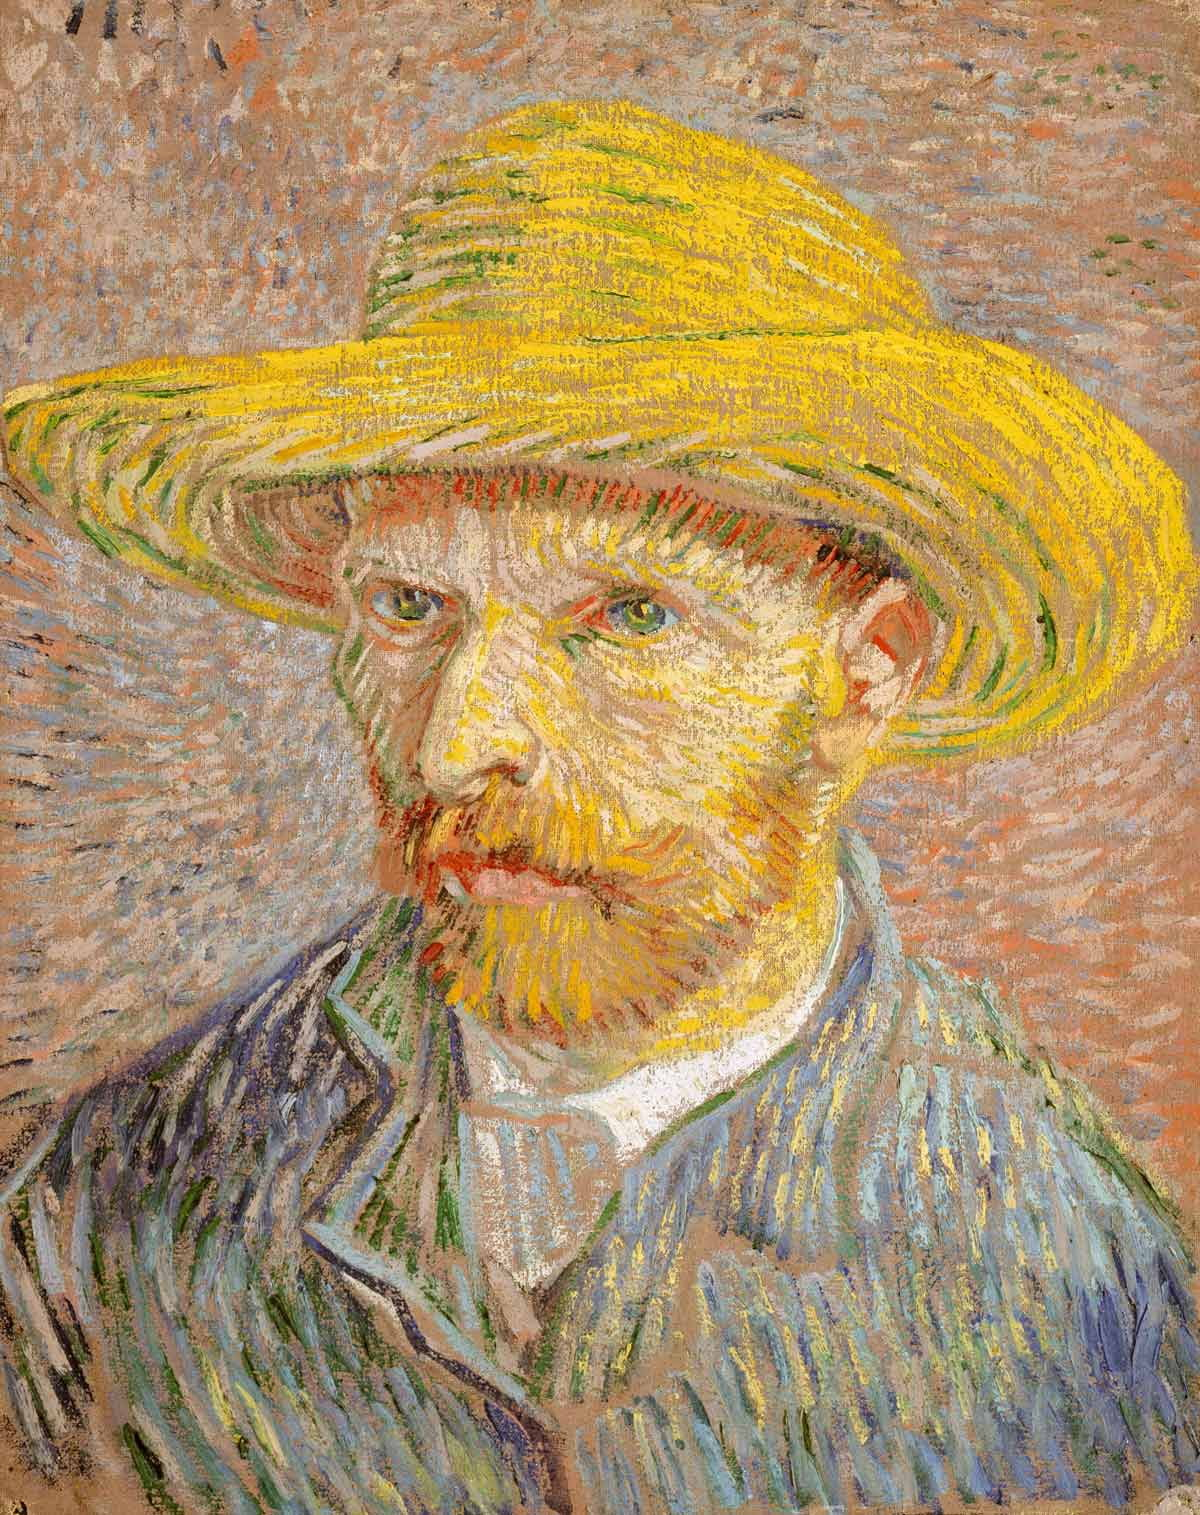 Vincent Van Gough's Self-Portrait with a Straw Hat